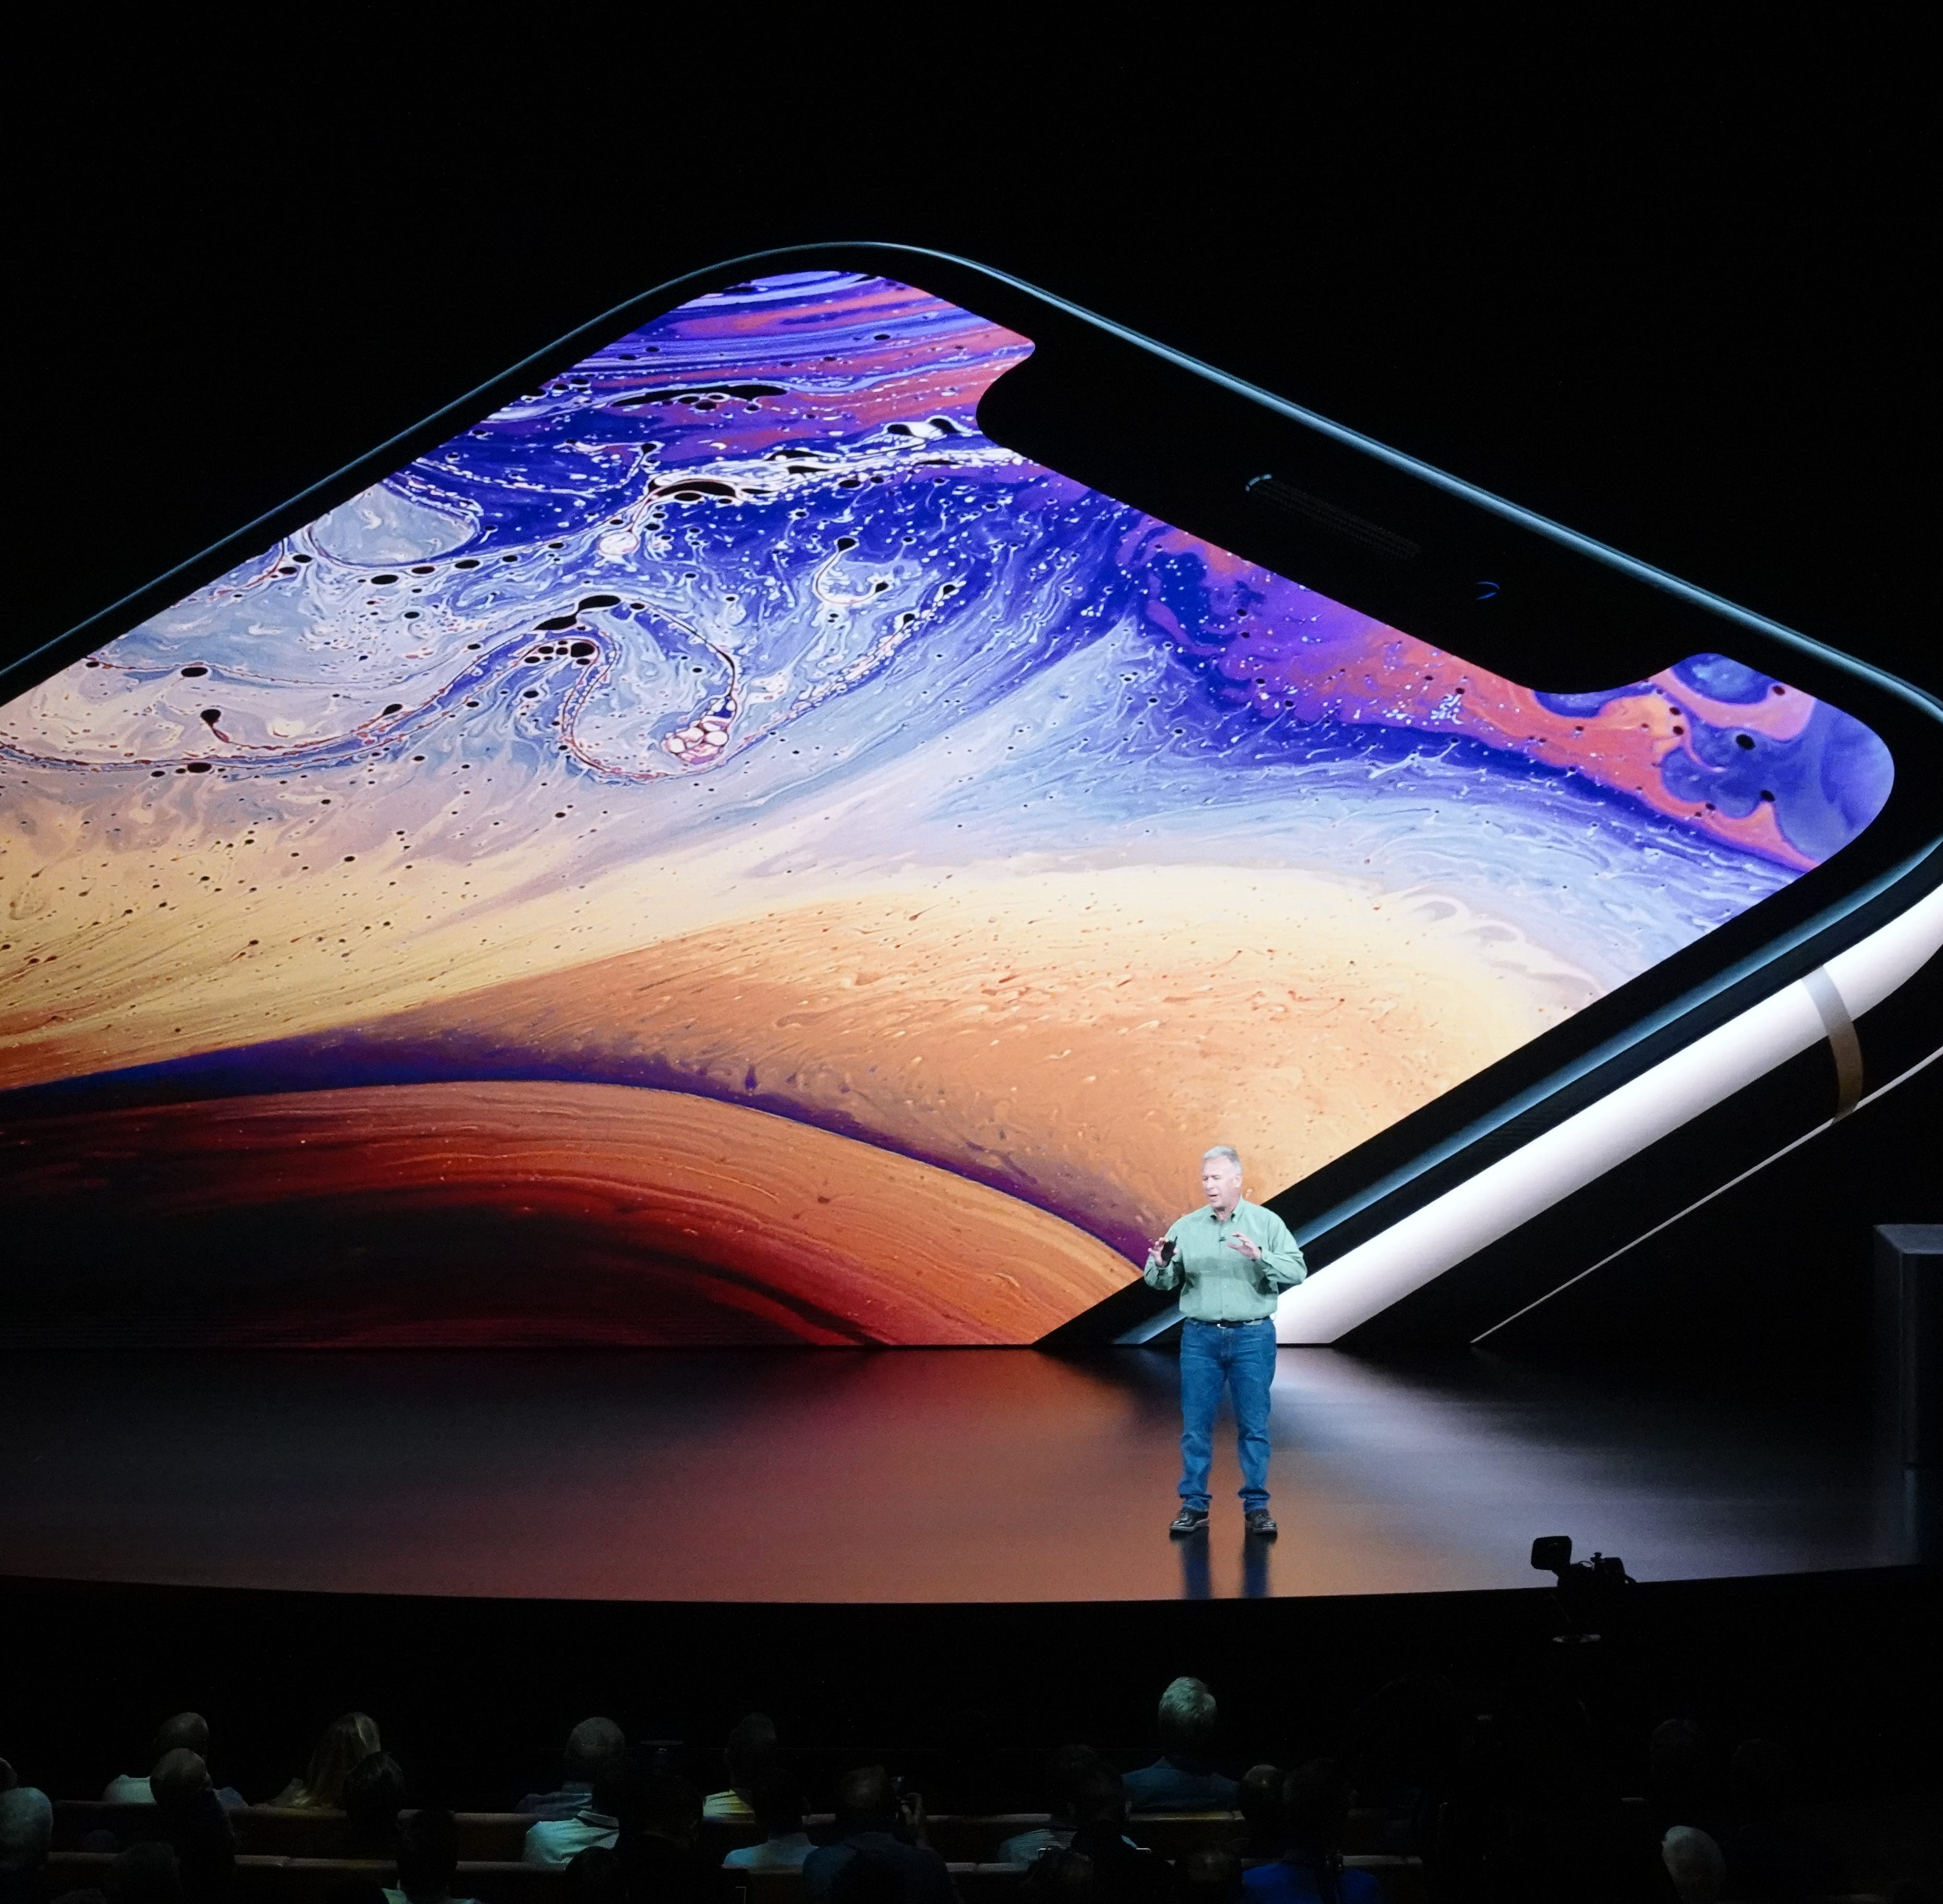 Recap: Apple unveils the iPhone XS and iPhone XR